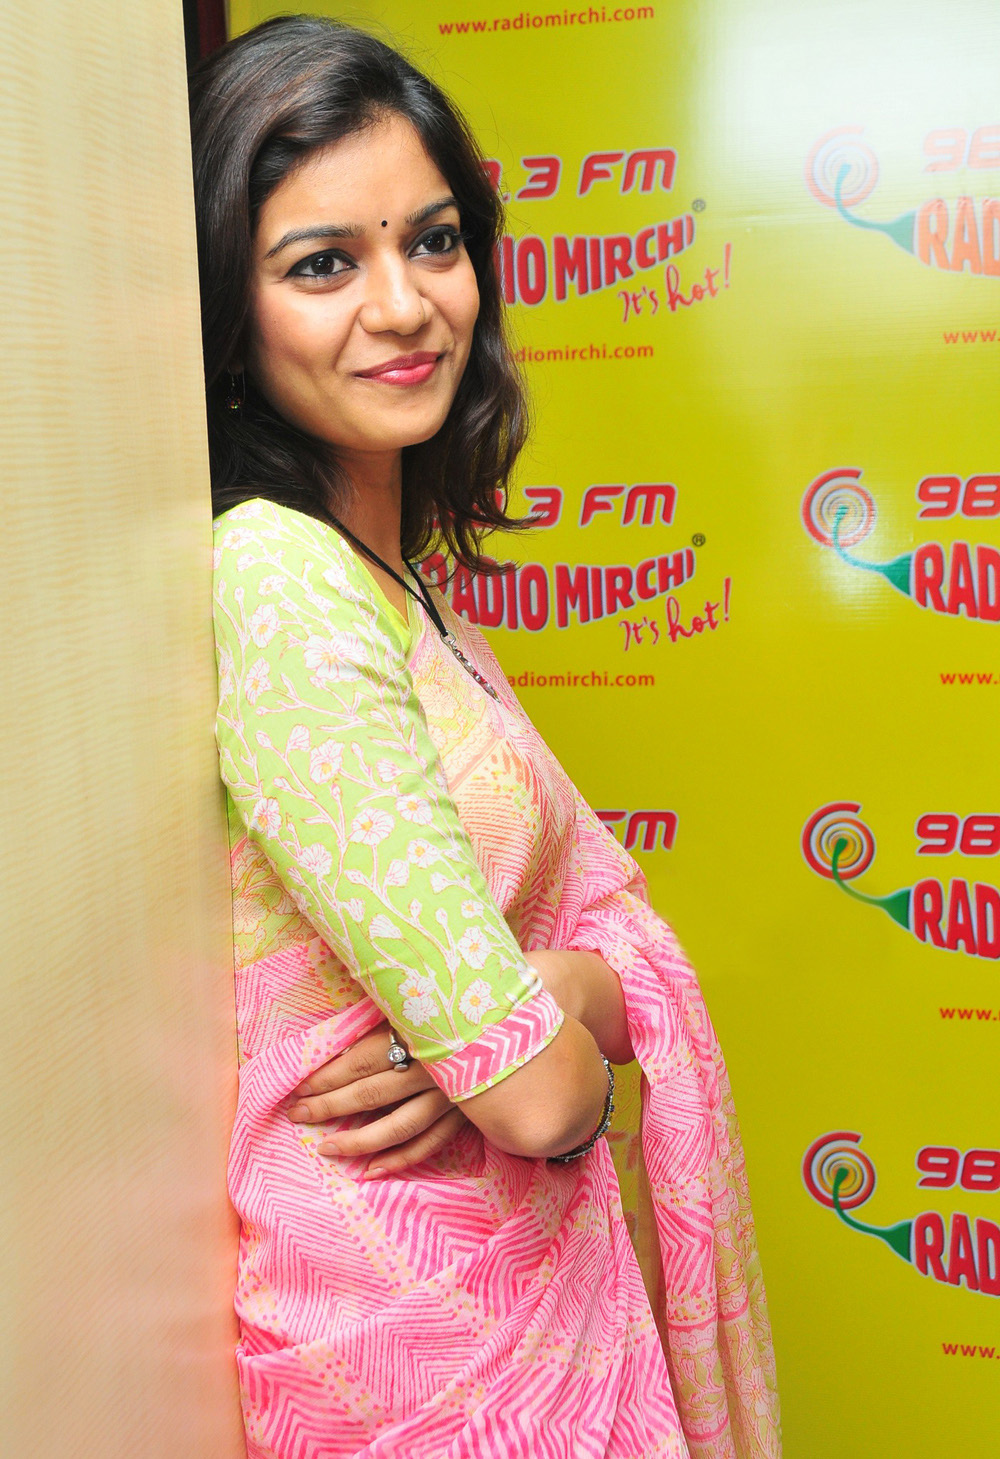 how to get job in radio mirchi